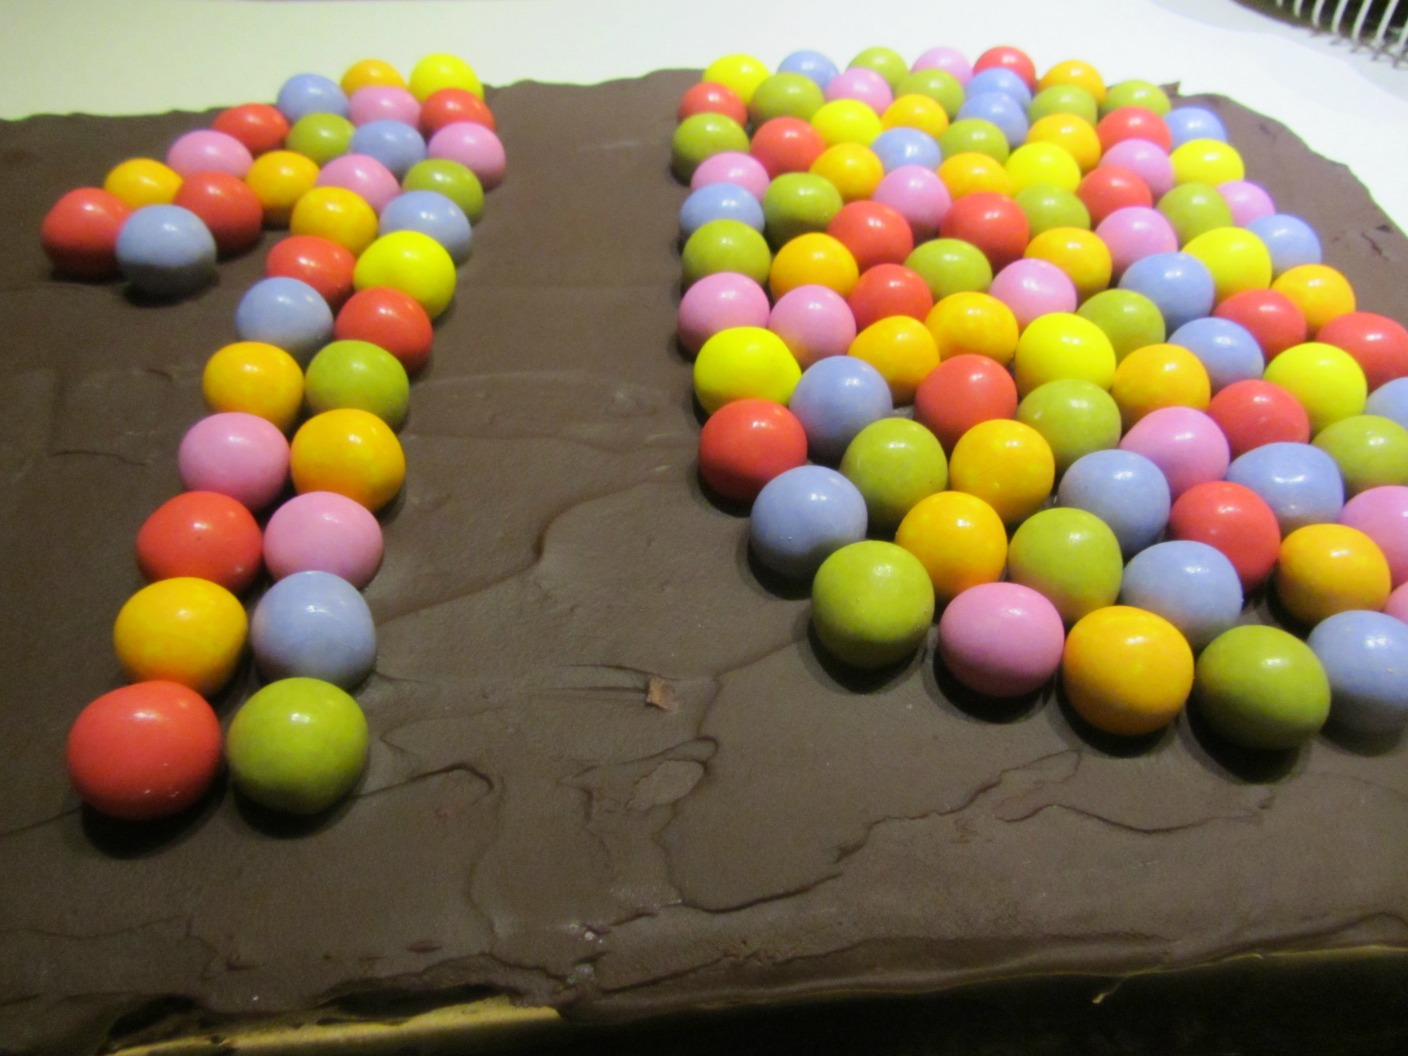 Chocolate birthday cake3